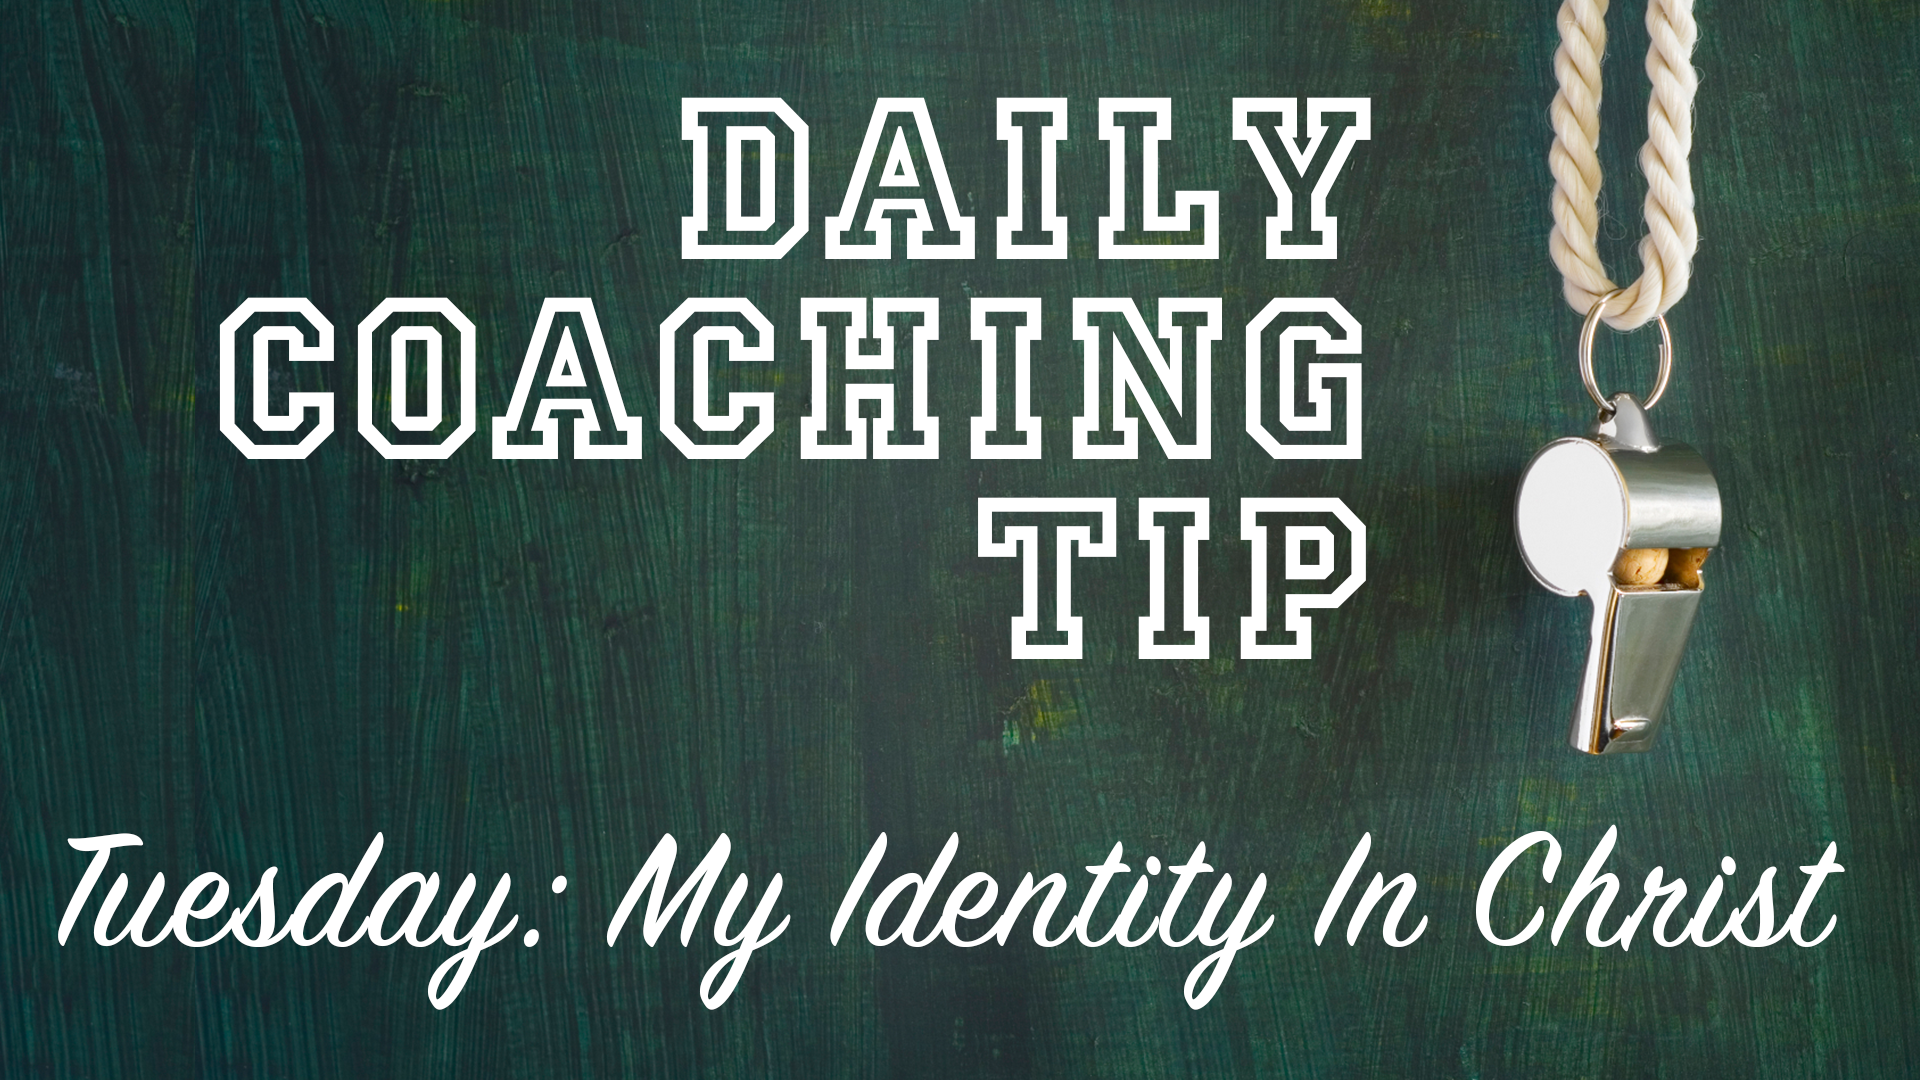 Daily Coaching Tip, Tuesday, May 17, 2016